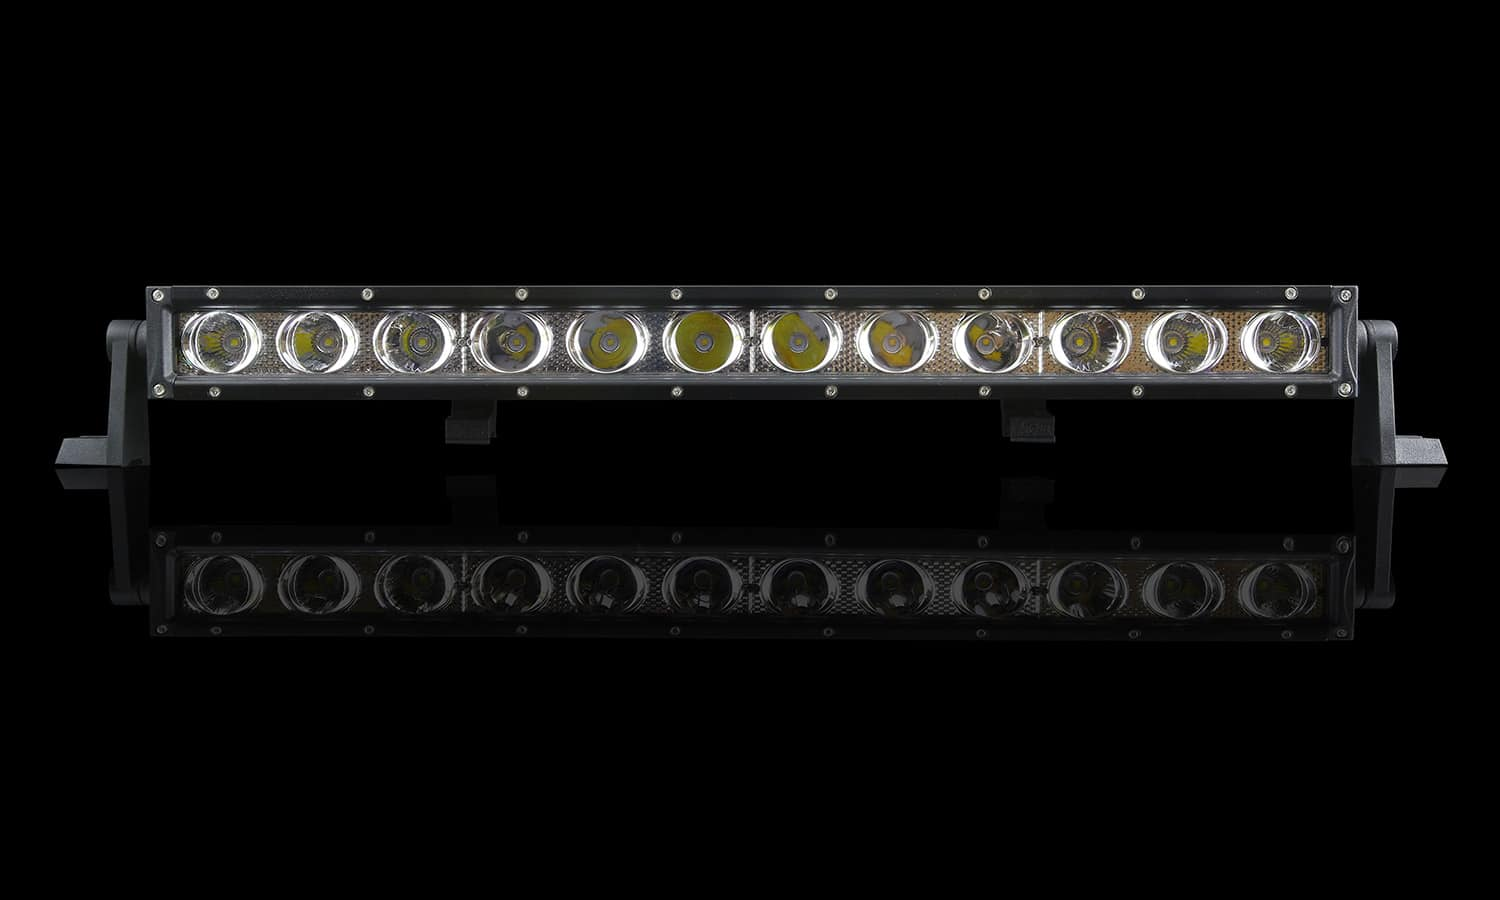 korr lighting 4x4 led light bar xds 340 2 xd series 20\